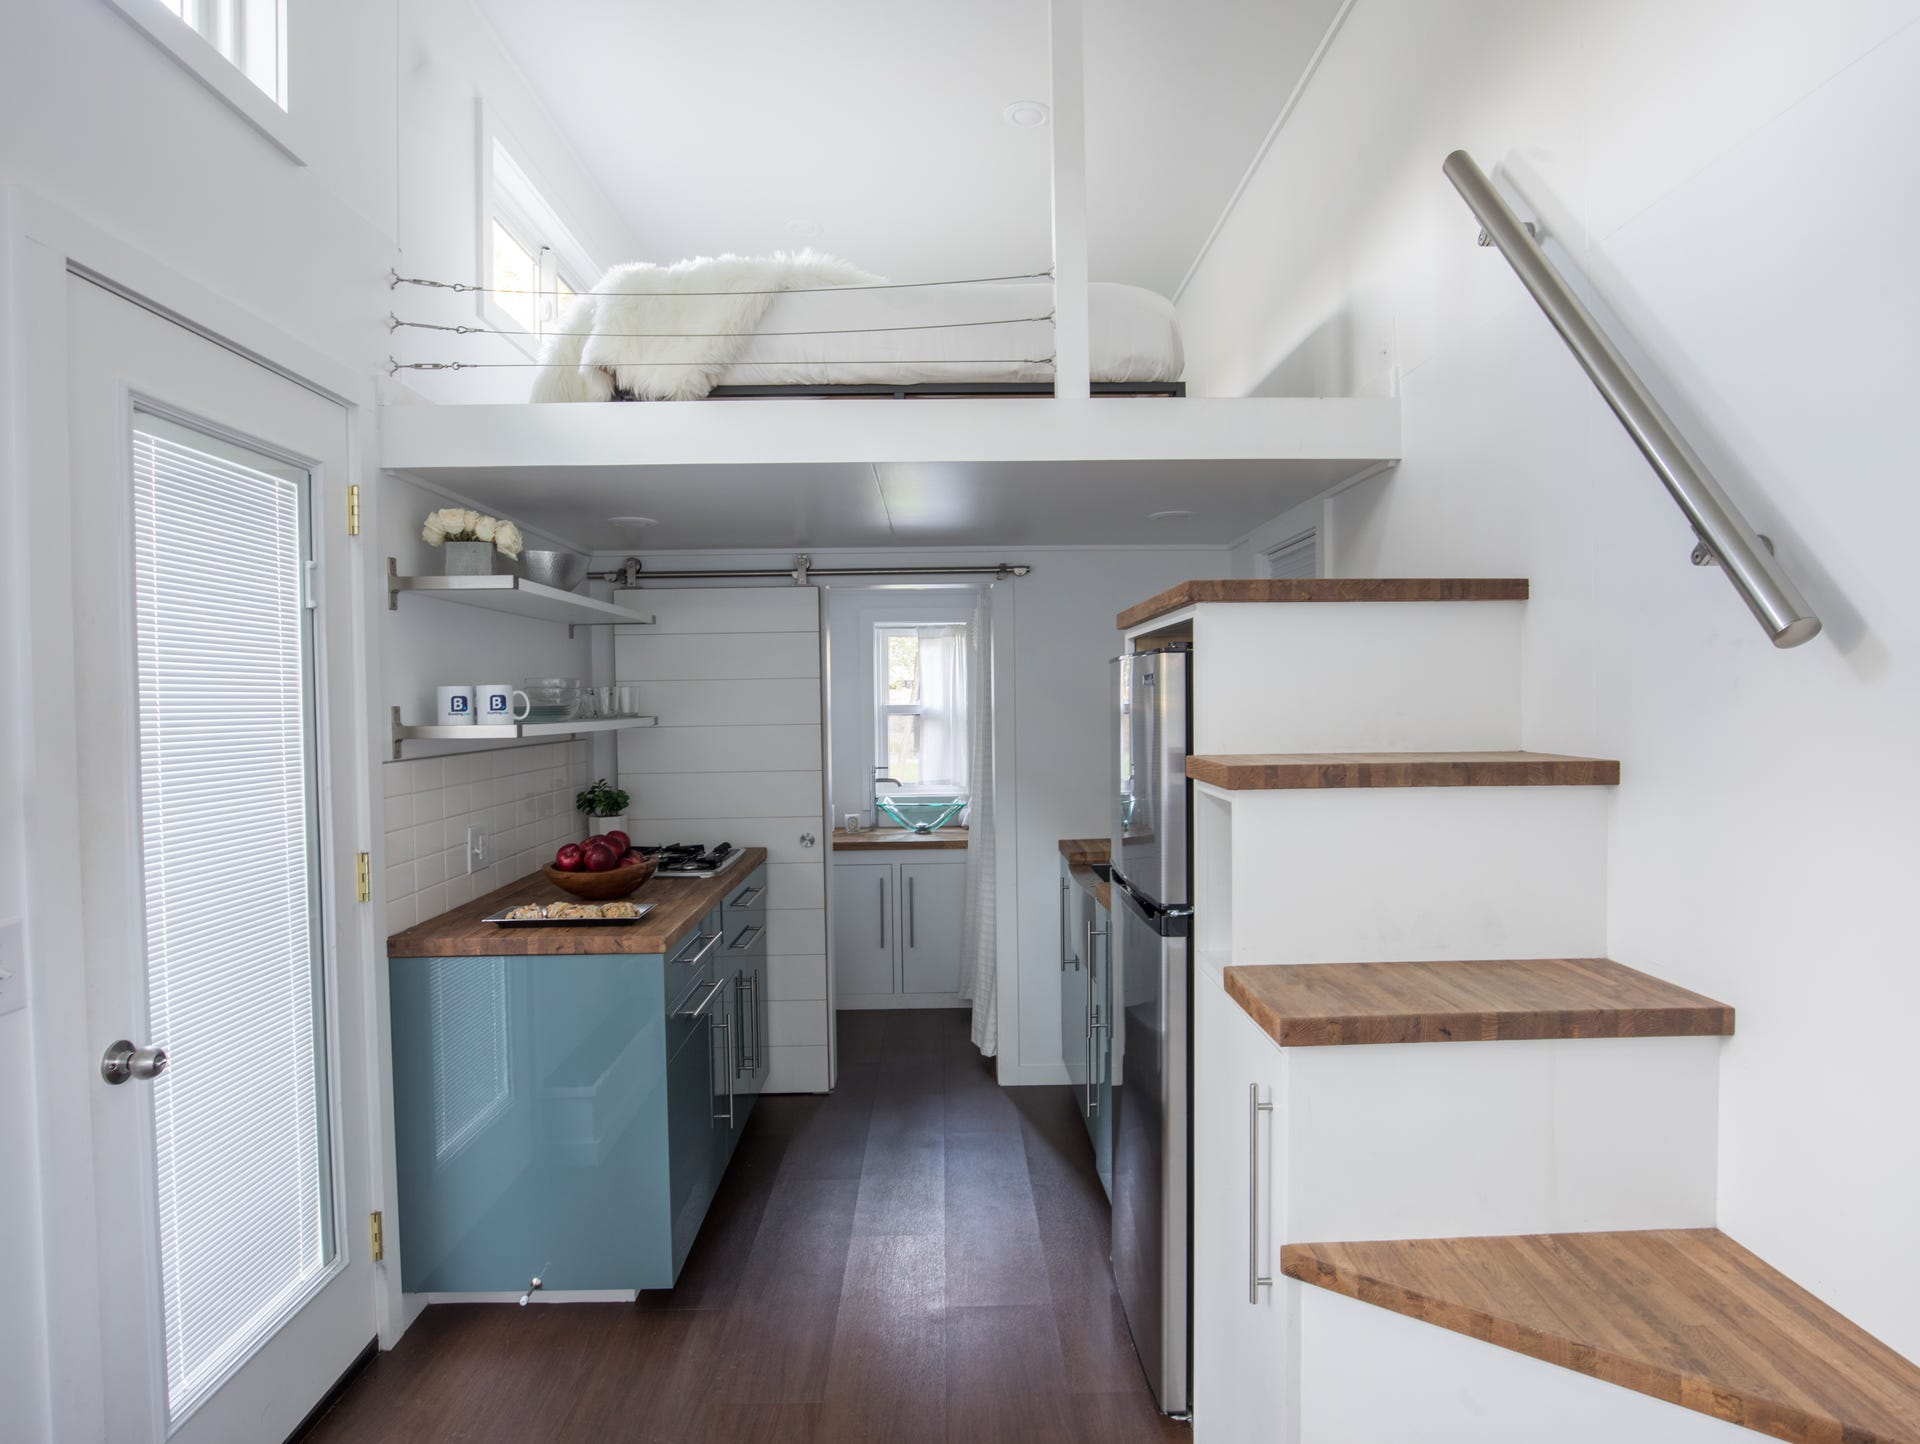 This is the interior of the 192 square-foot tiny home